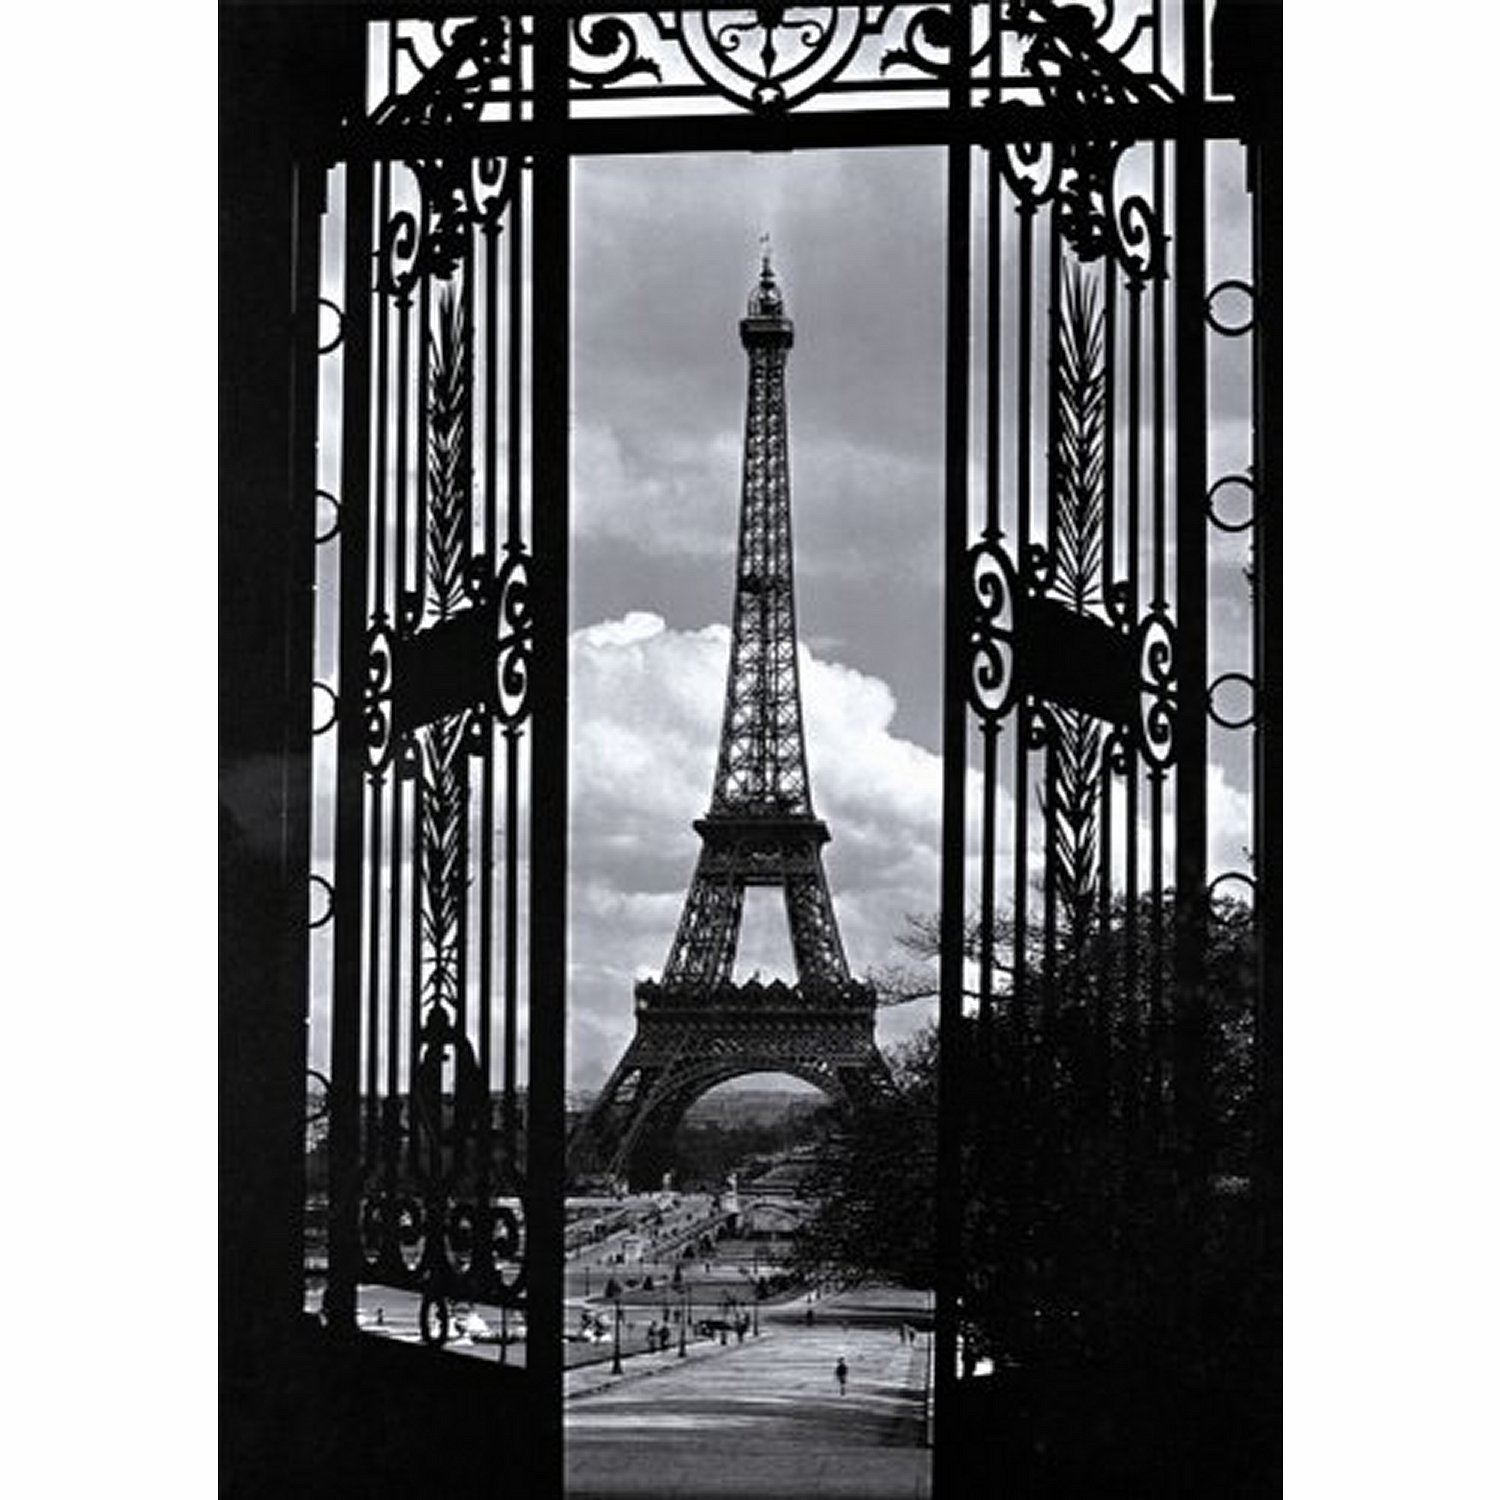 eiffelturm paris 1000 teile nathan puzzle online kaufen. Black Bedroom Furniture Sets. Home Design Ideas